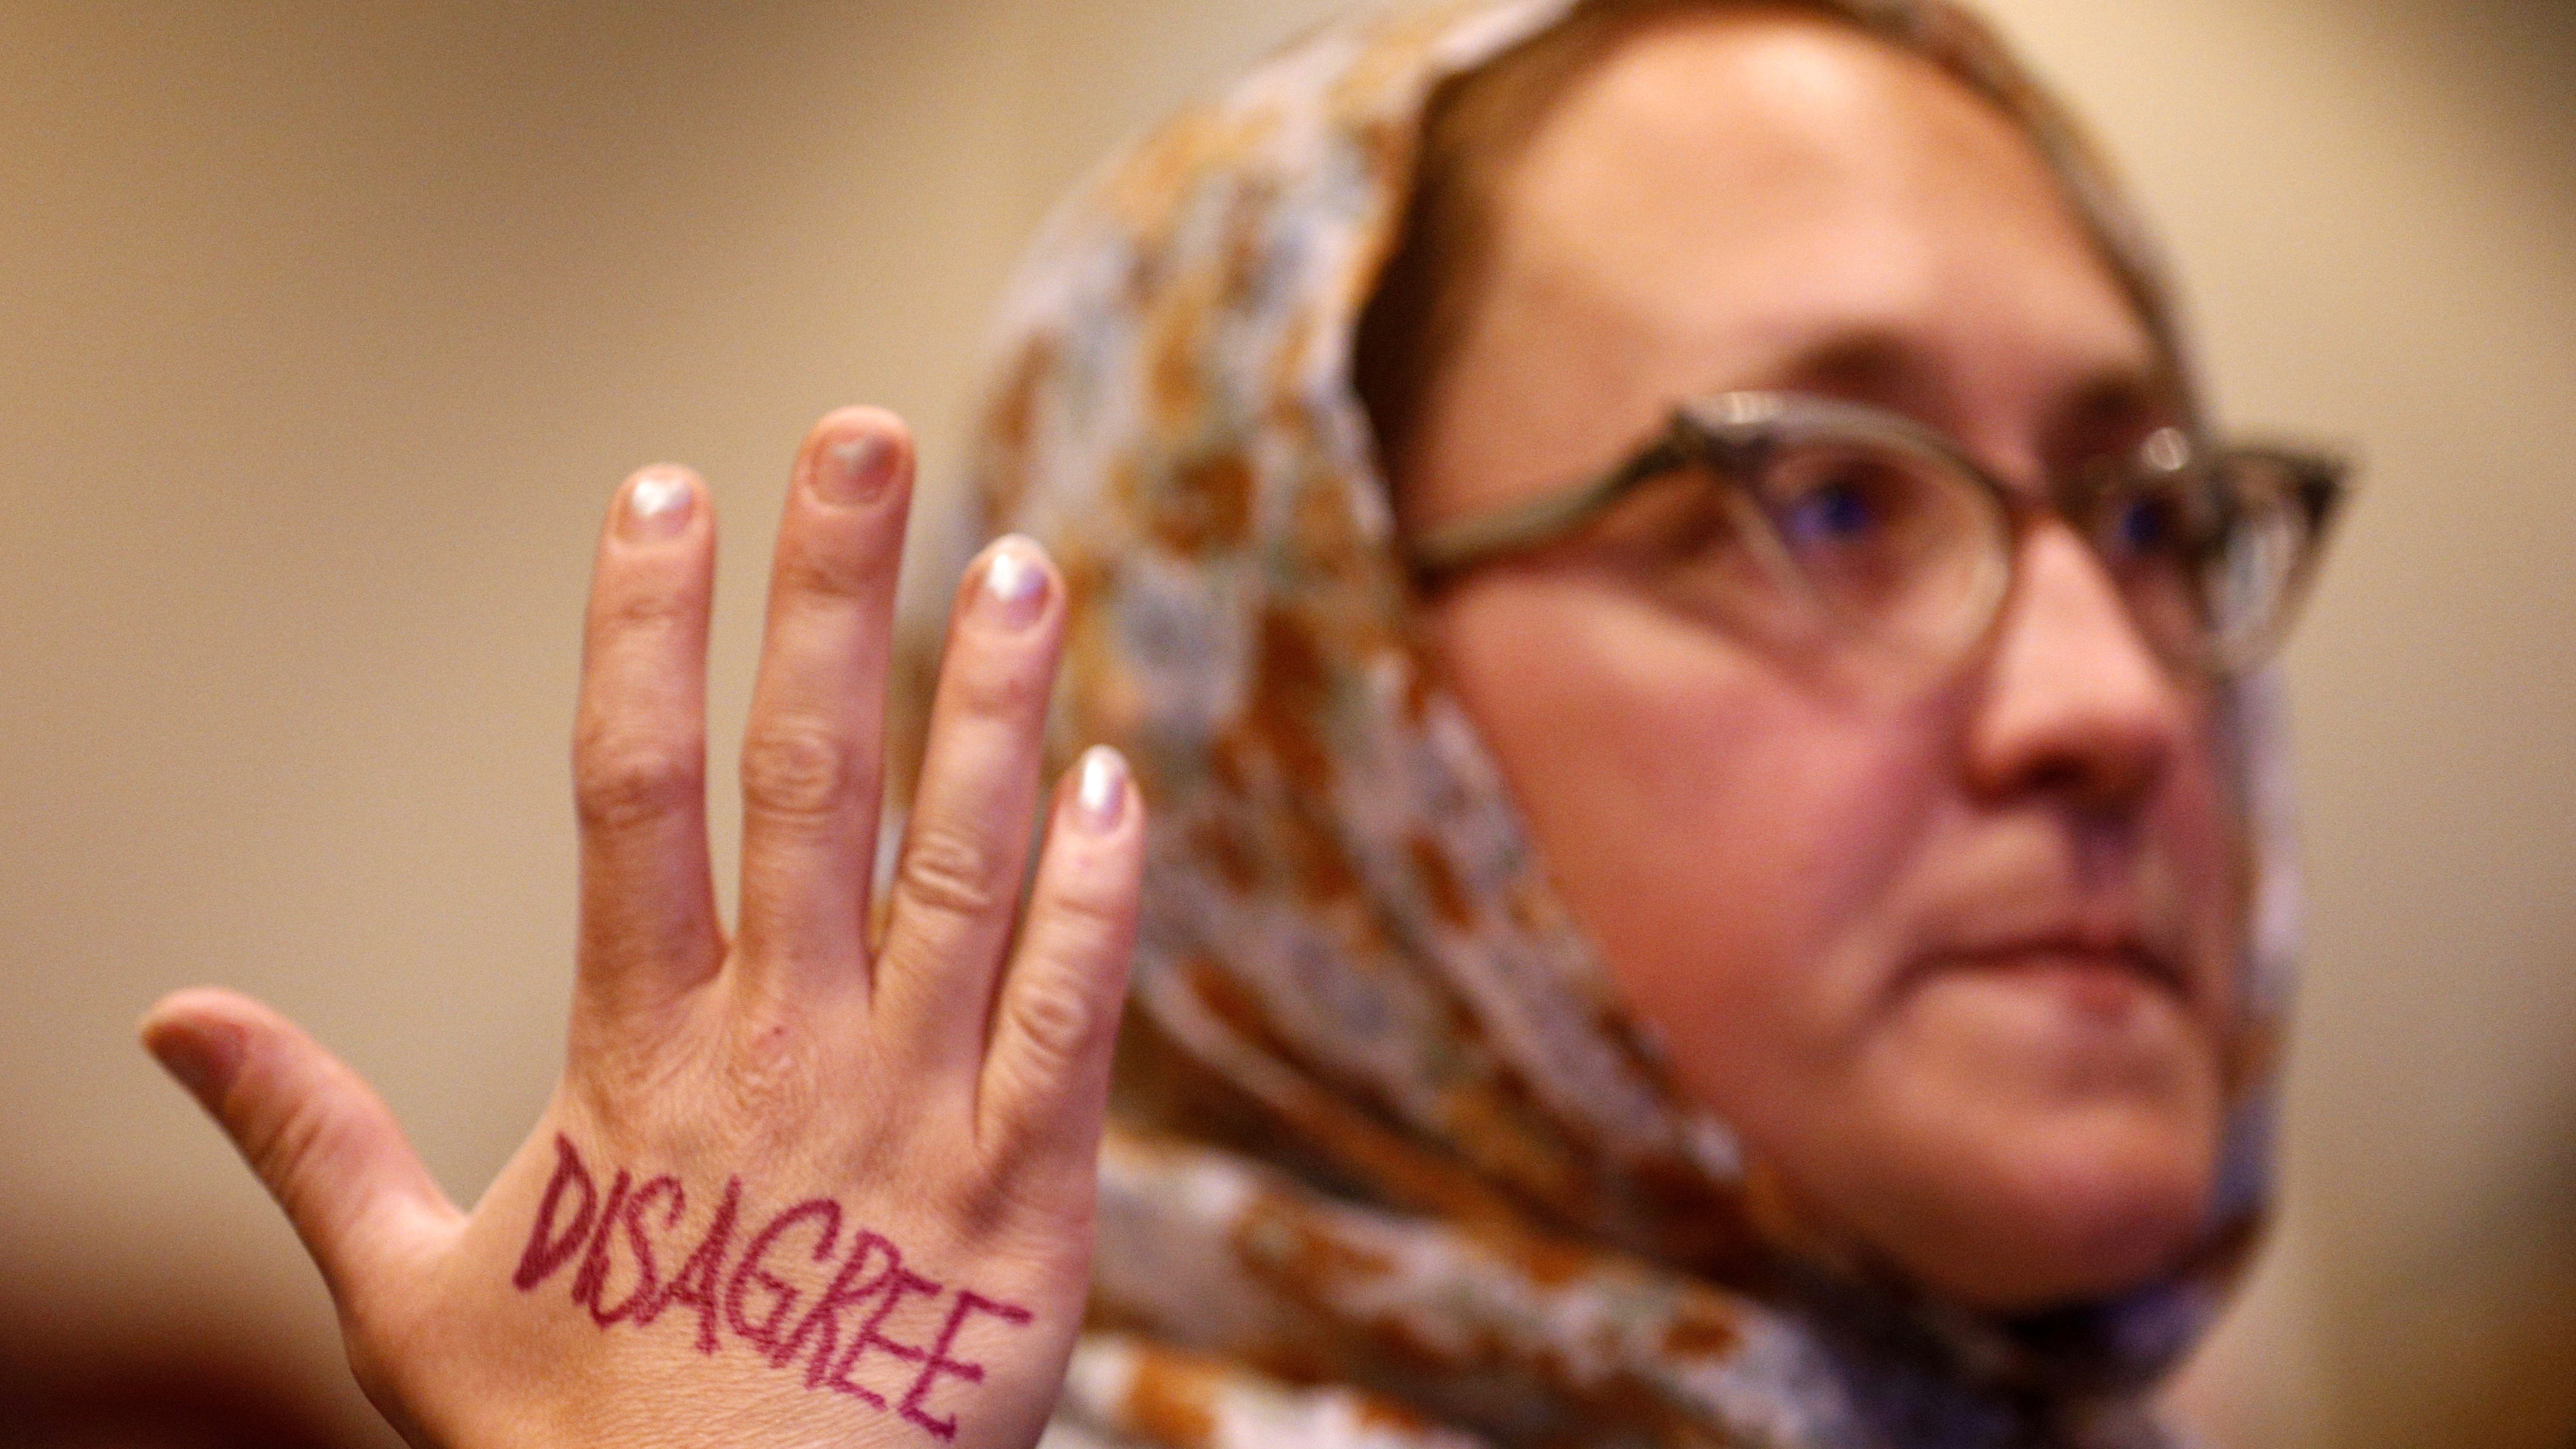 """Julia Grabowski holds up hand with the word """"disagree"""" on it at a New Orleans town hall meeting, 2017."""